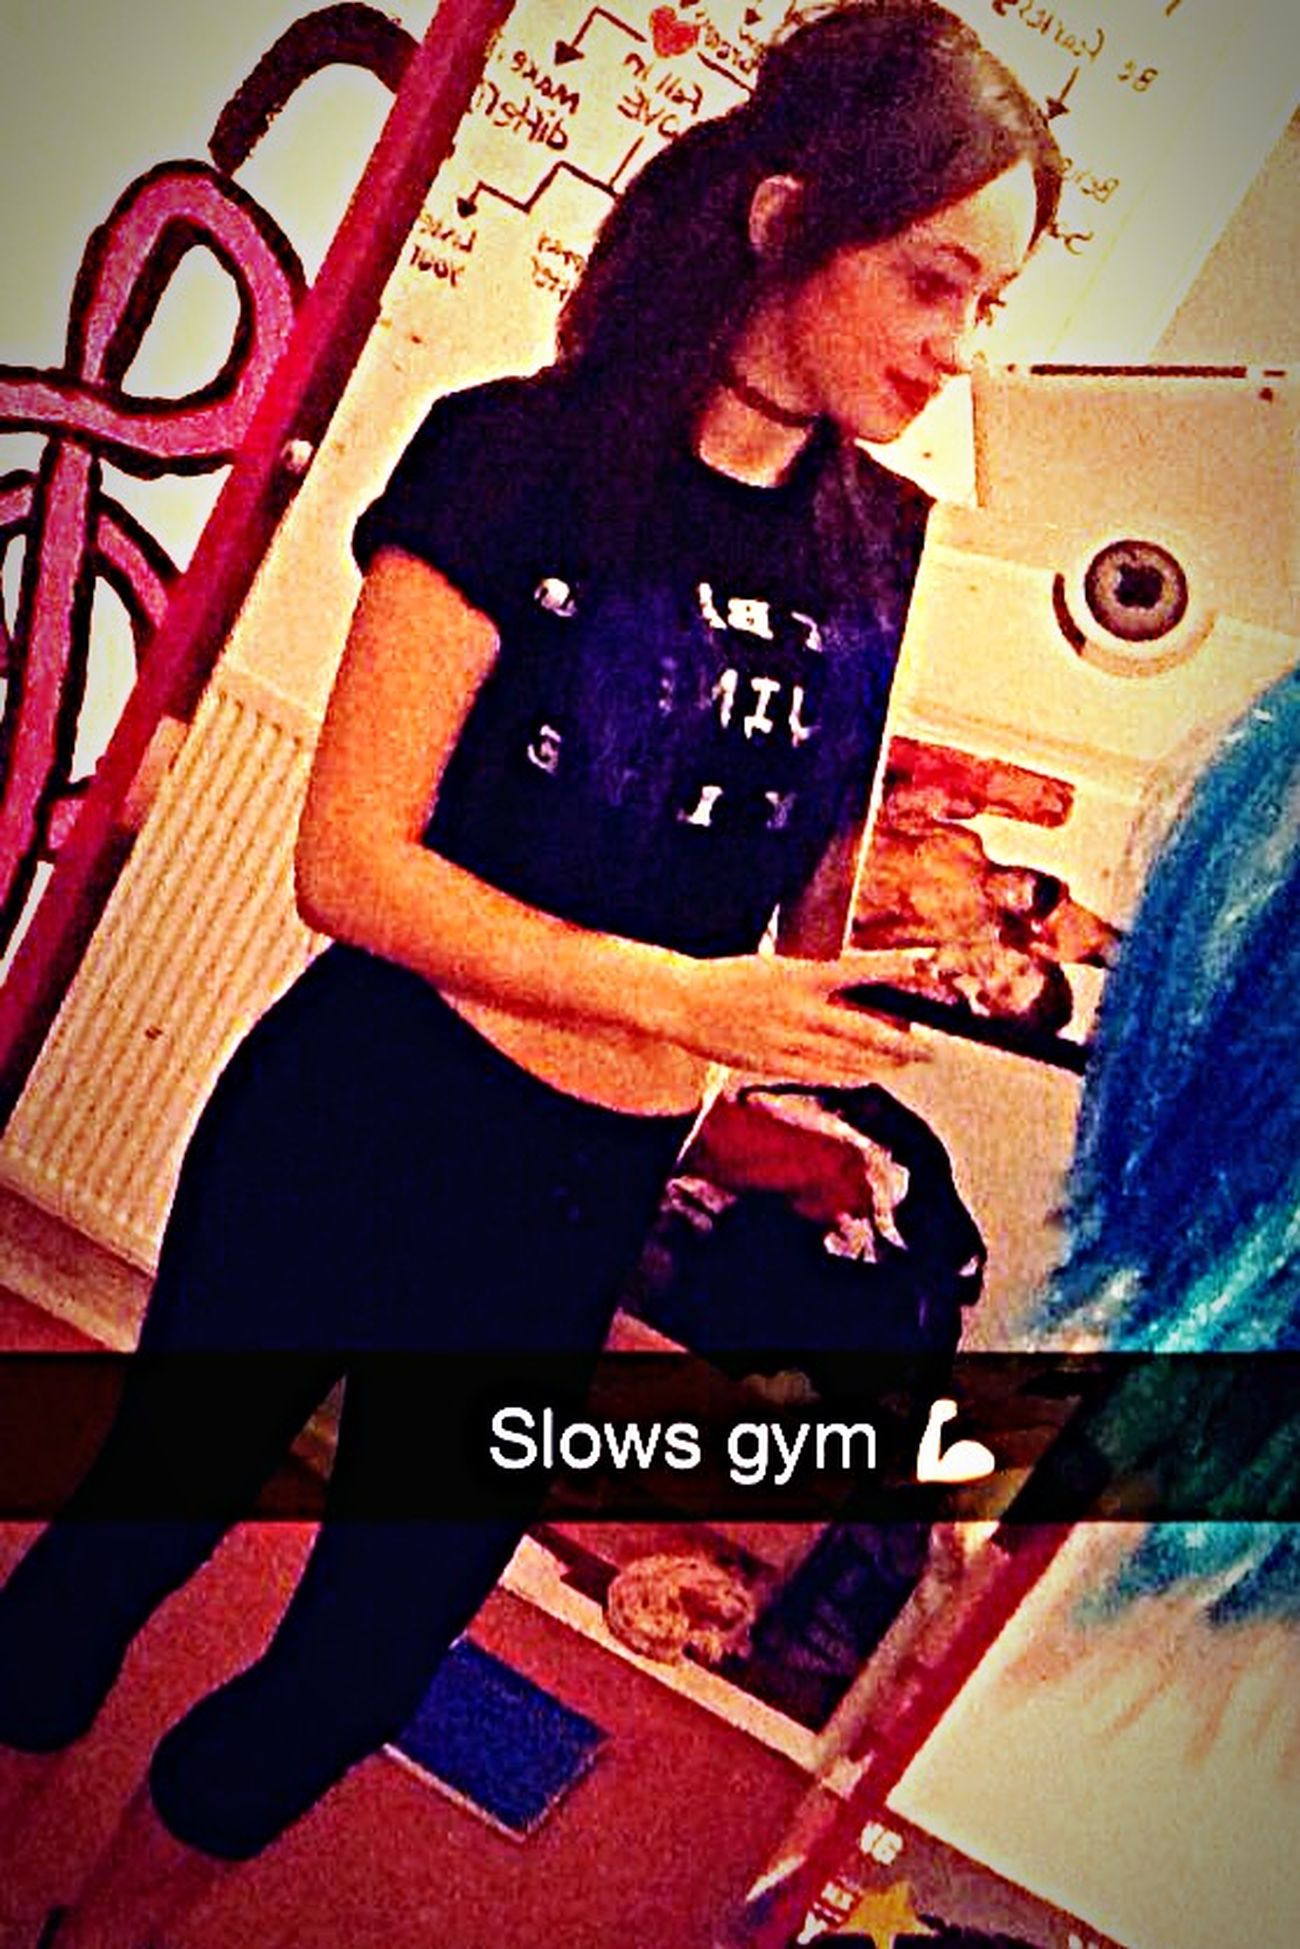 LastNight Gym Bluehairdontcare HairExtensions It's Okay, I'd Be Jealous Too Selfie ✌ LoveYourself Hotterthanyou That's Me